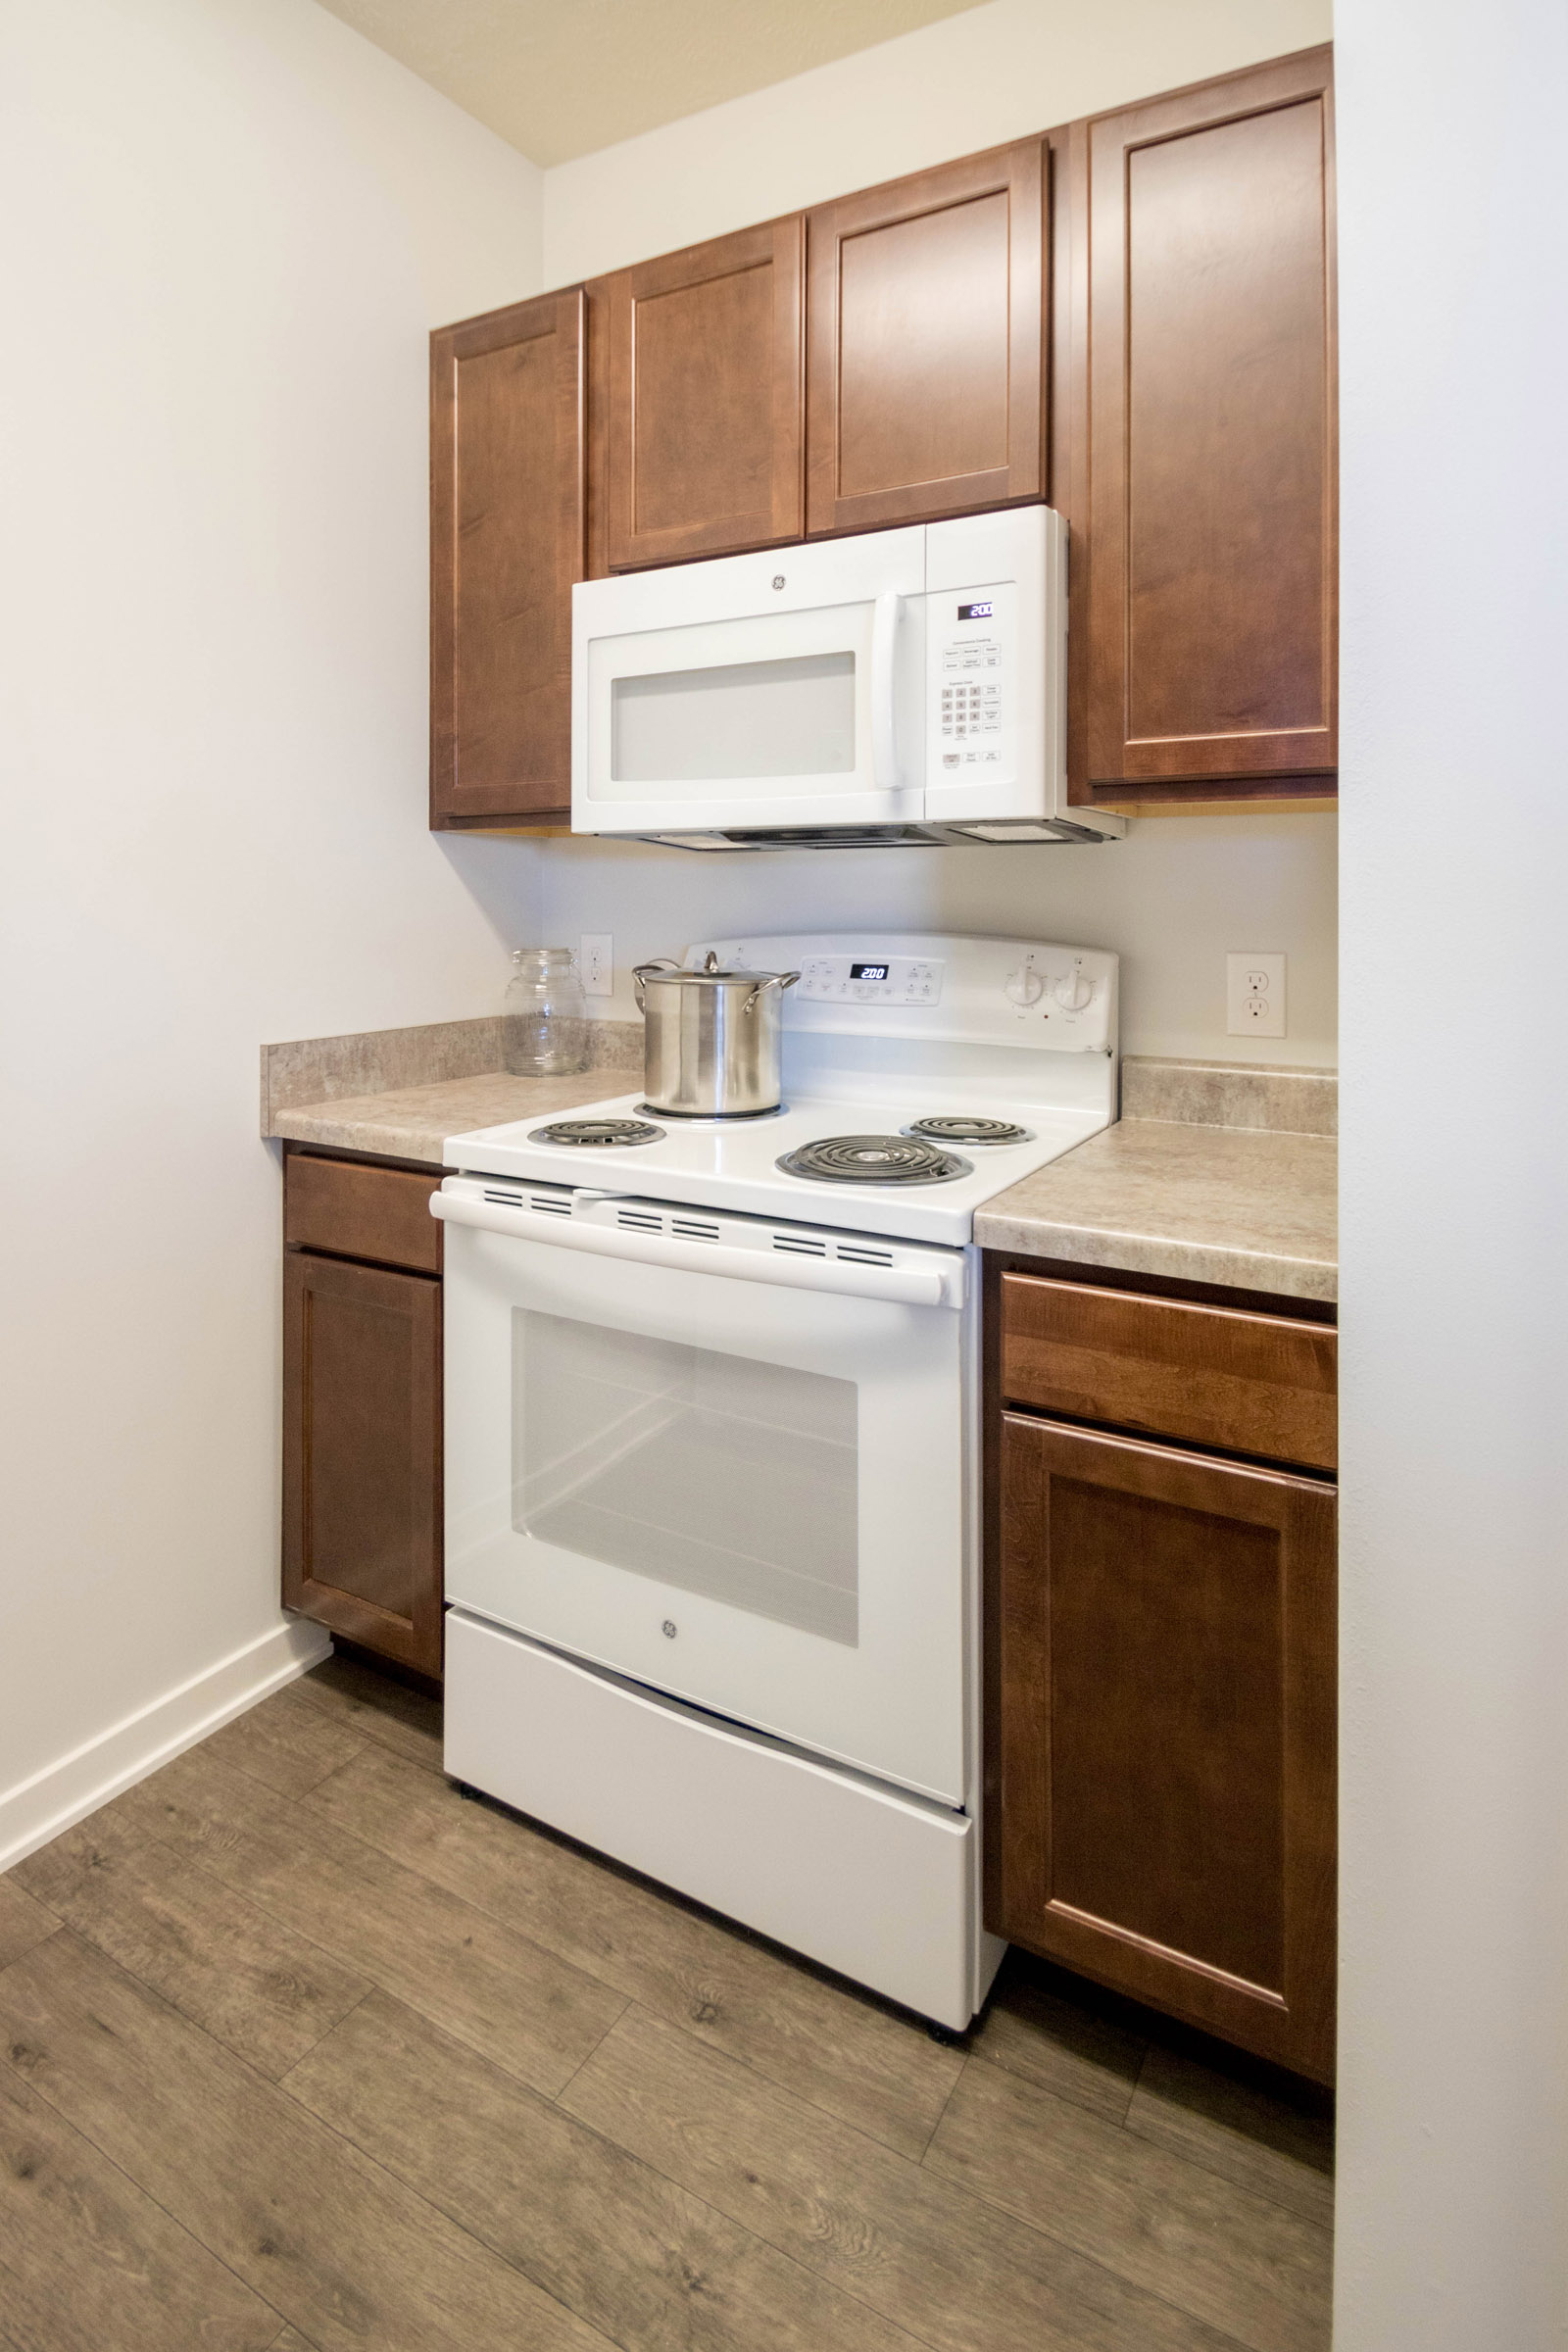 Built-in Microwave at Aspen Grove Apartments in Omaha, NE